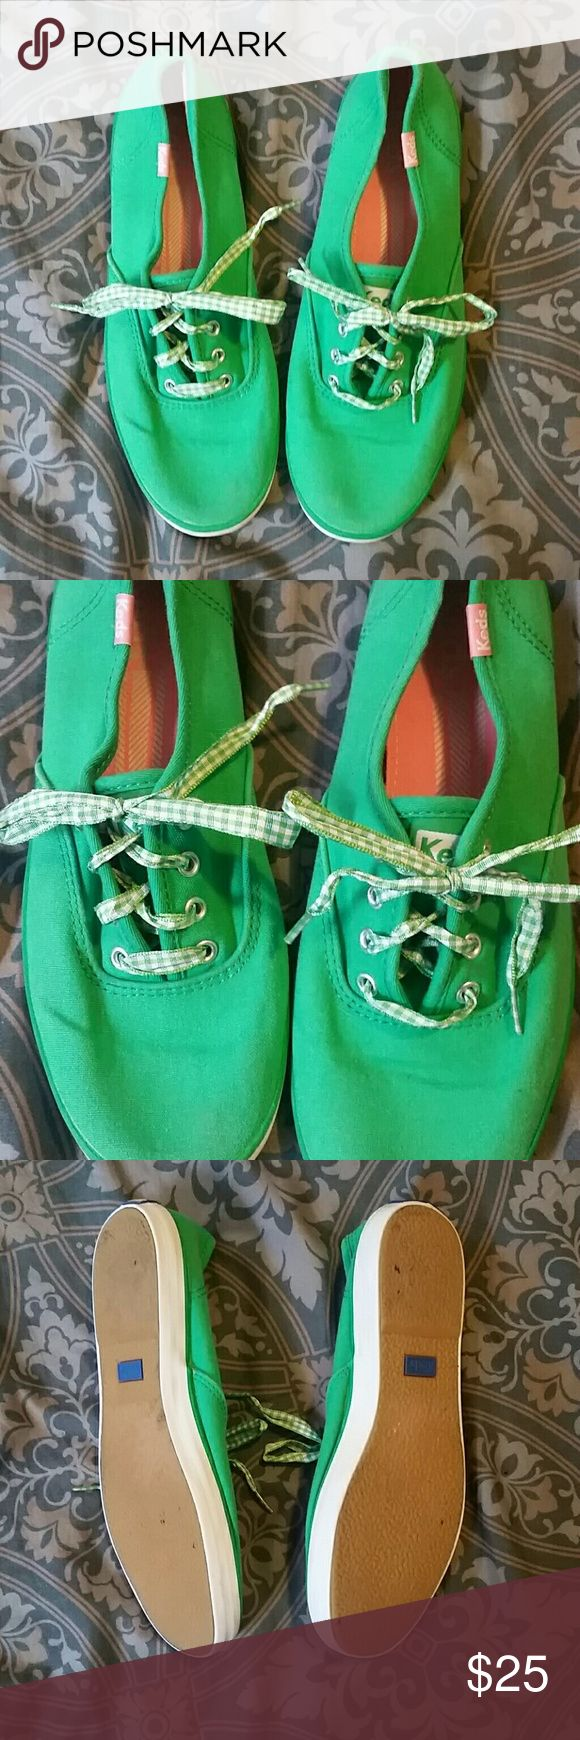 Keds These are a pair of green keds sneakers with a adorable gingham shoe lace they are in good used condition and very comfortable Keds Shoes Sneakers